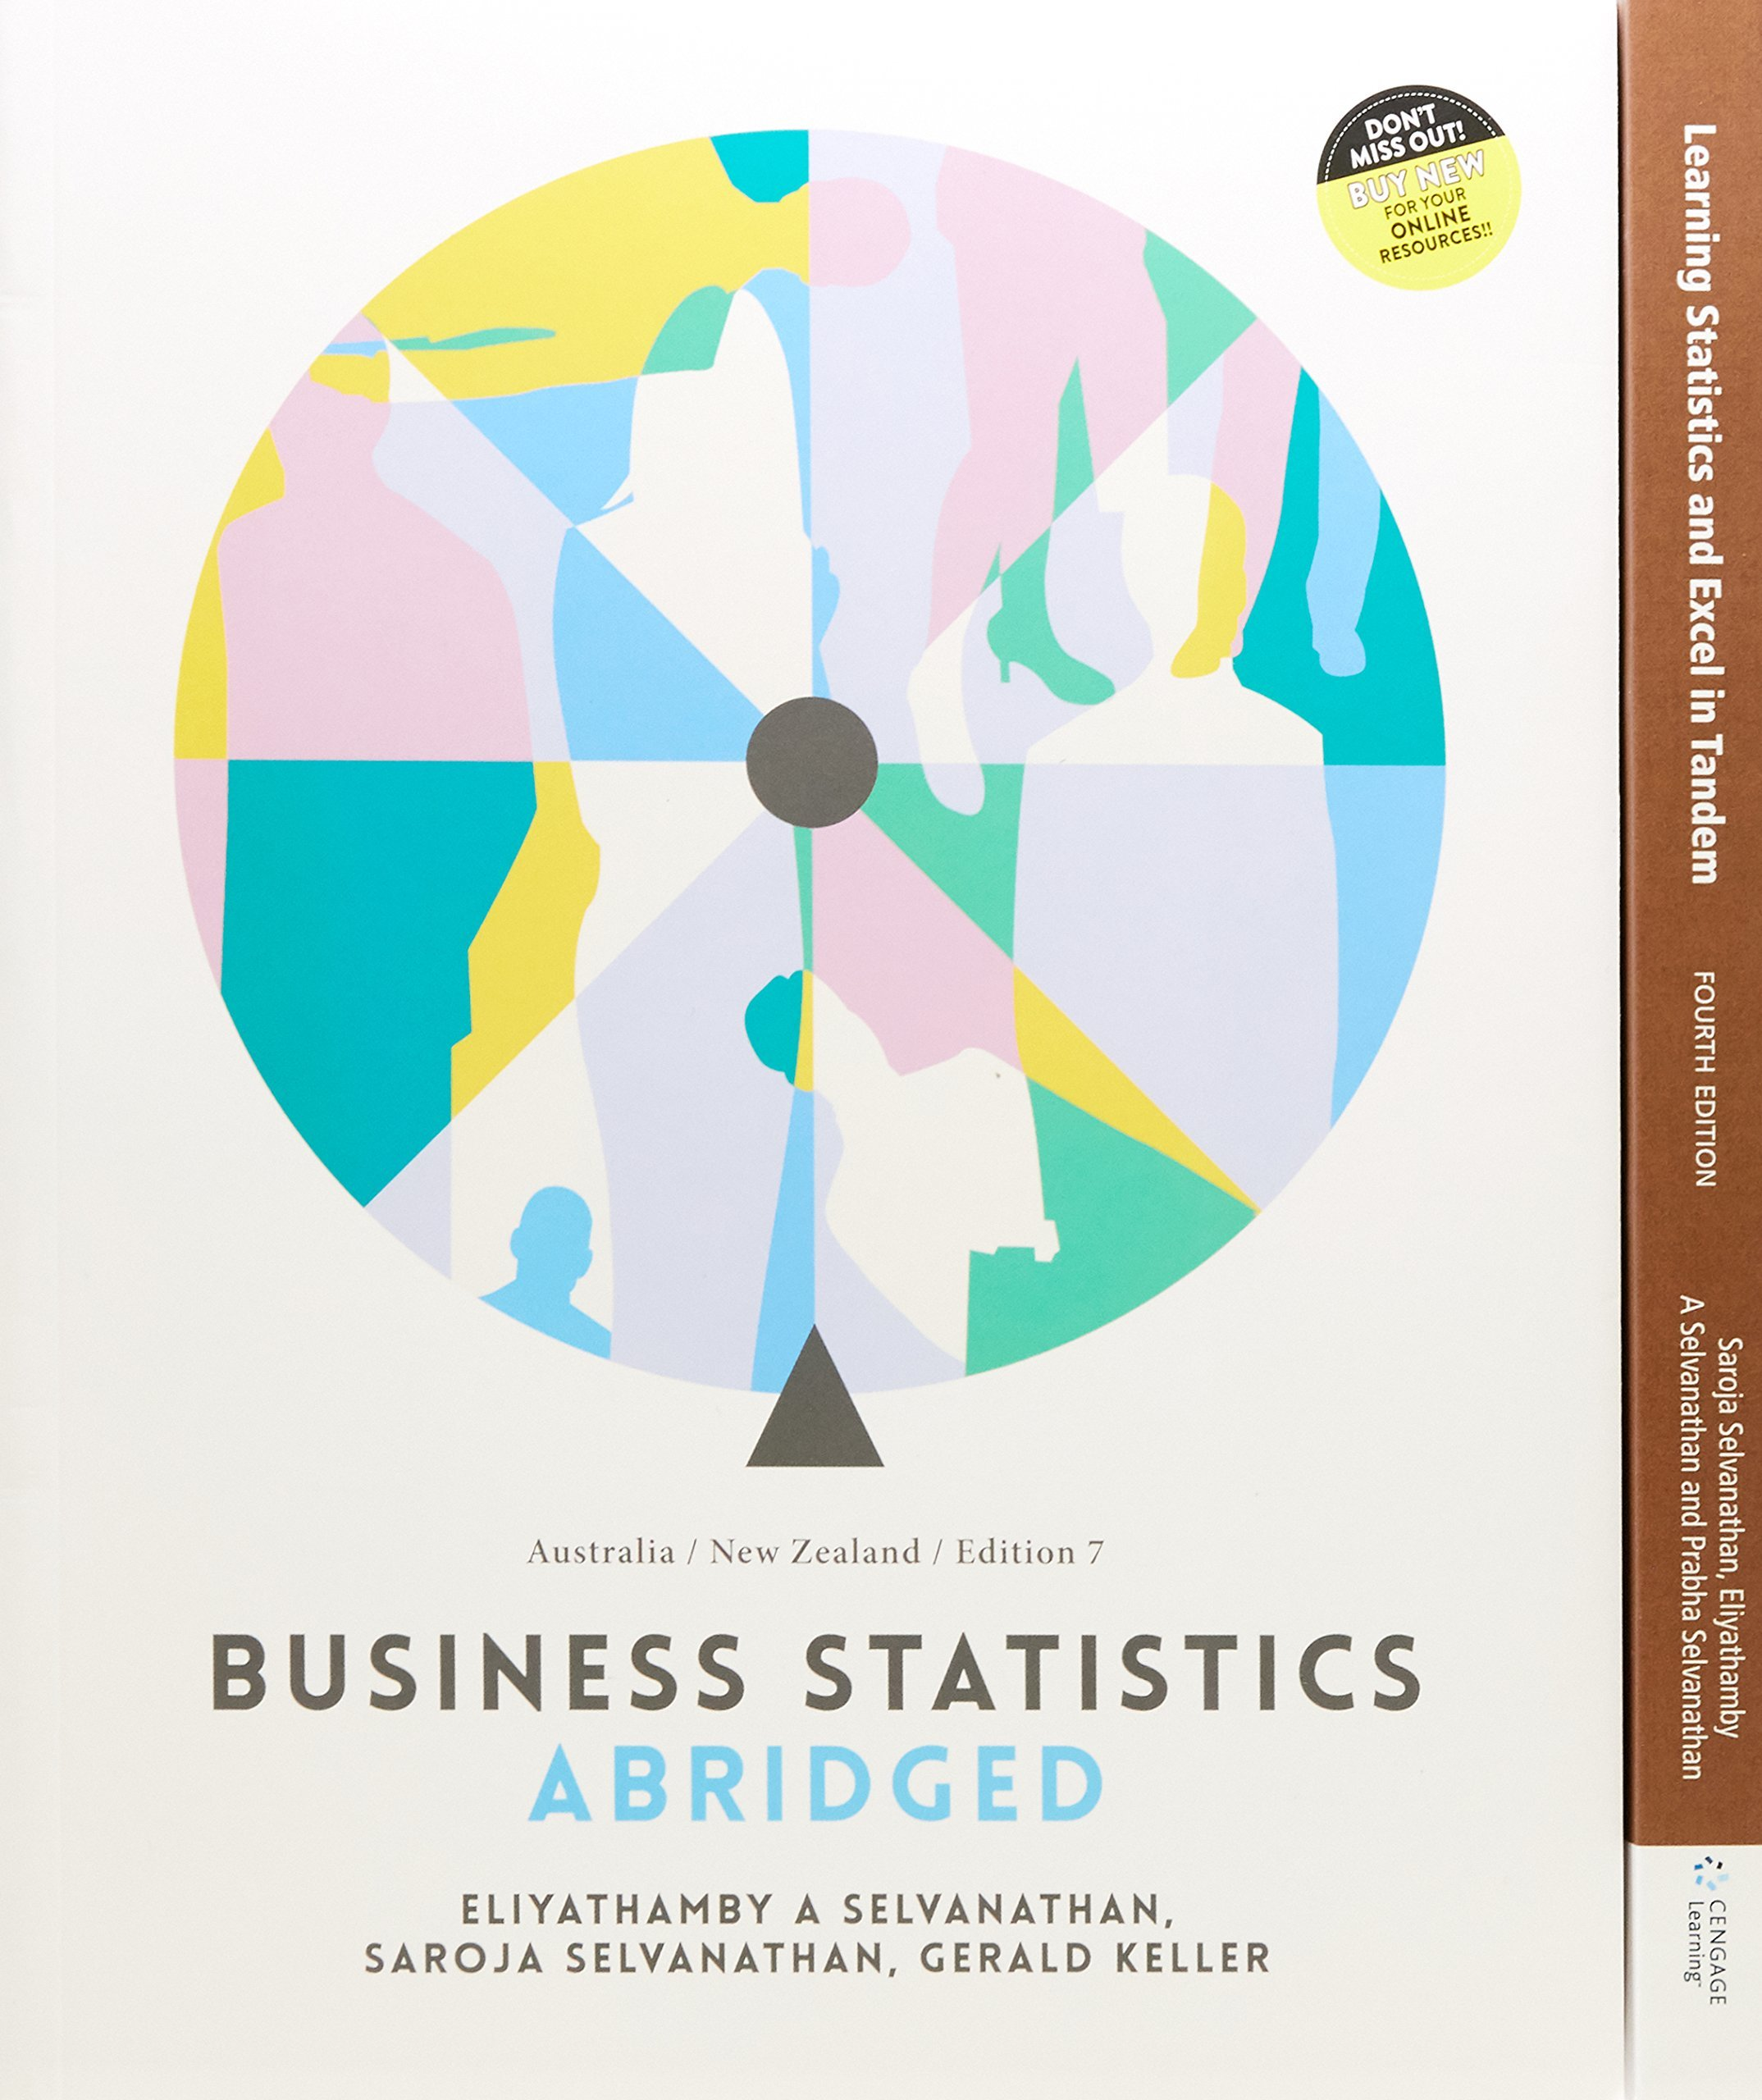 Bundle: Business Statistics Abridged: Australia New Zealand with Student Resource Access for 12 Months + PP0952 - Learning Statistics and EXCEL in Tandem